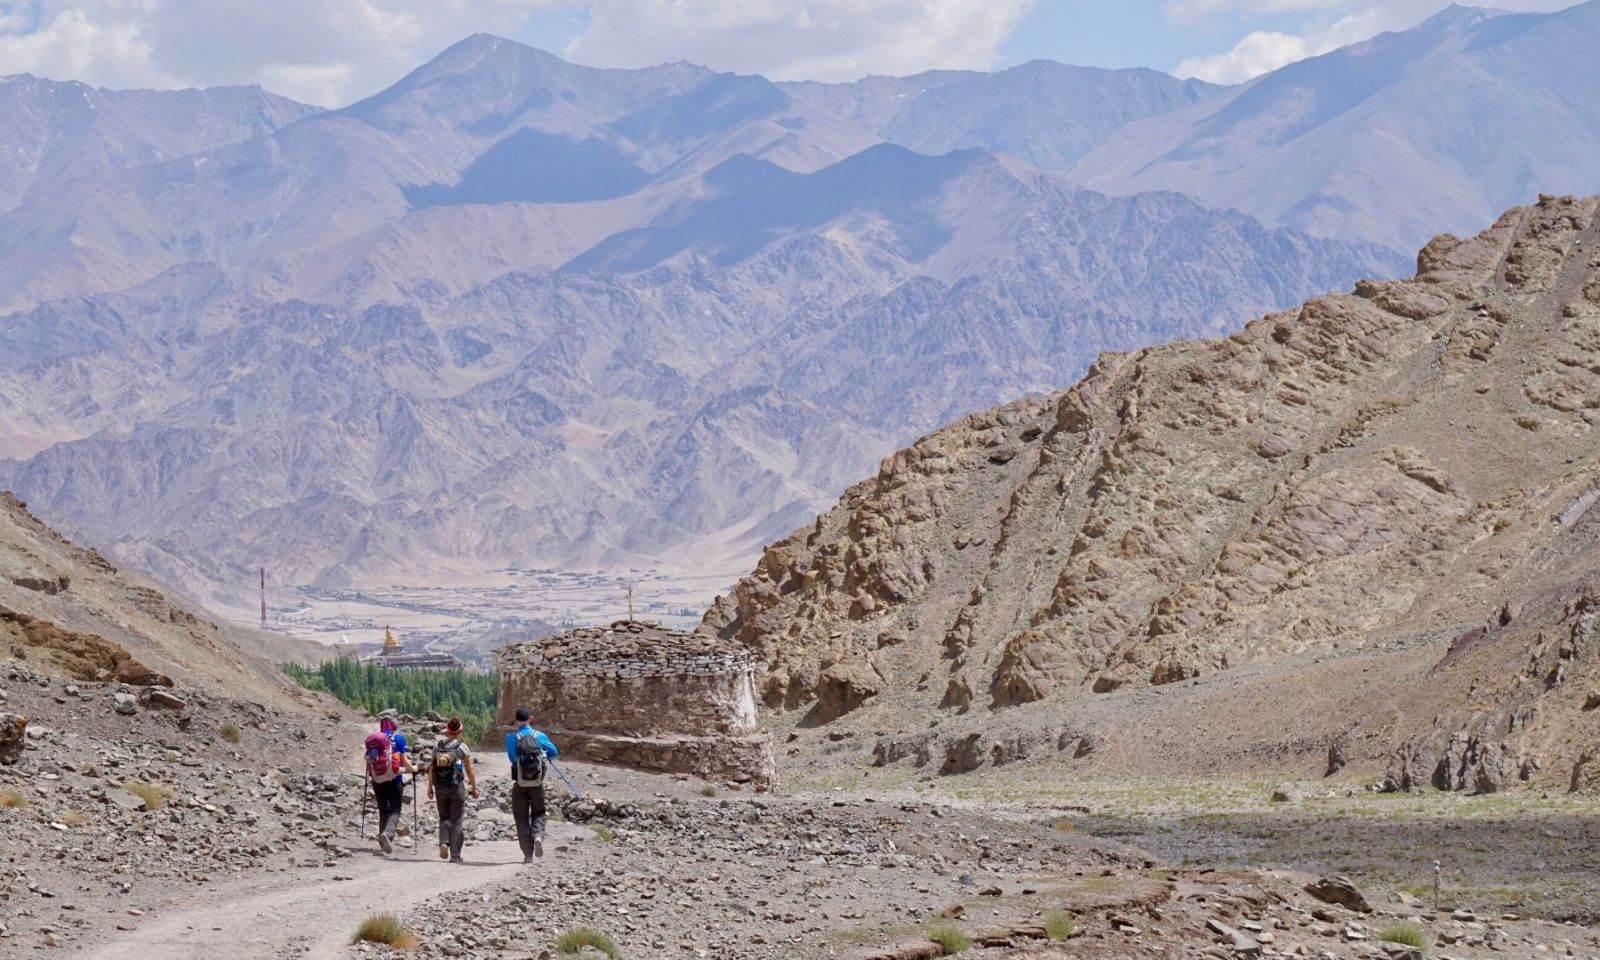 Group trekking in India and the Zanskar mountains.